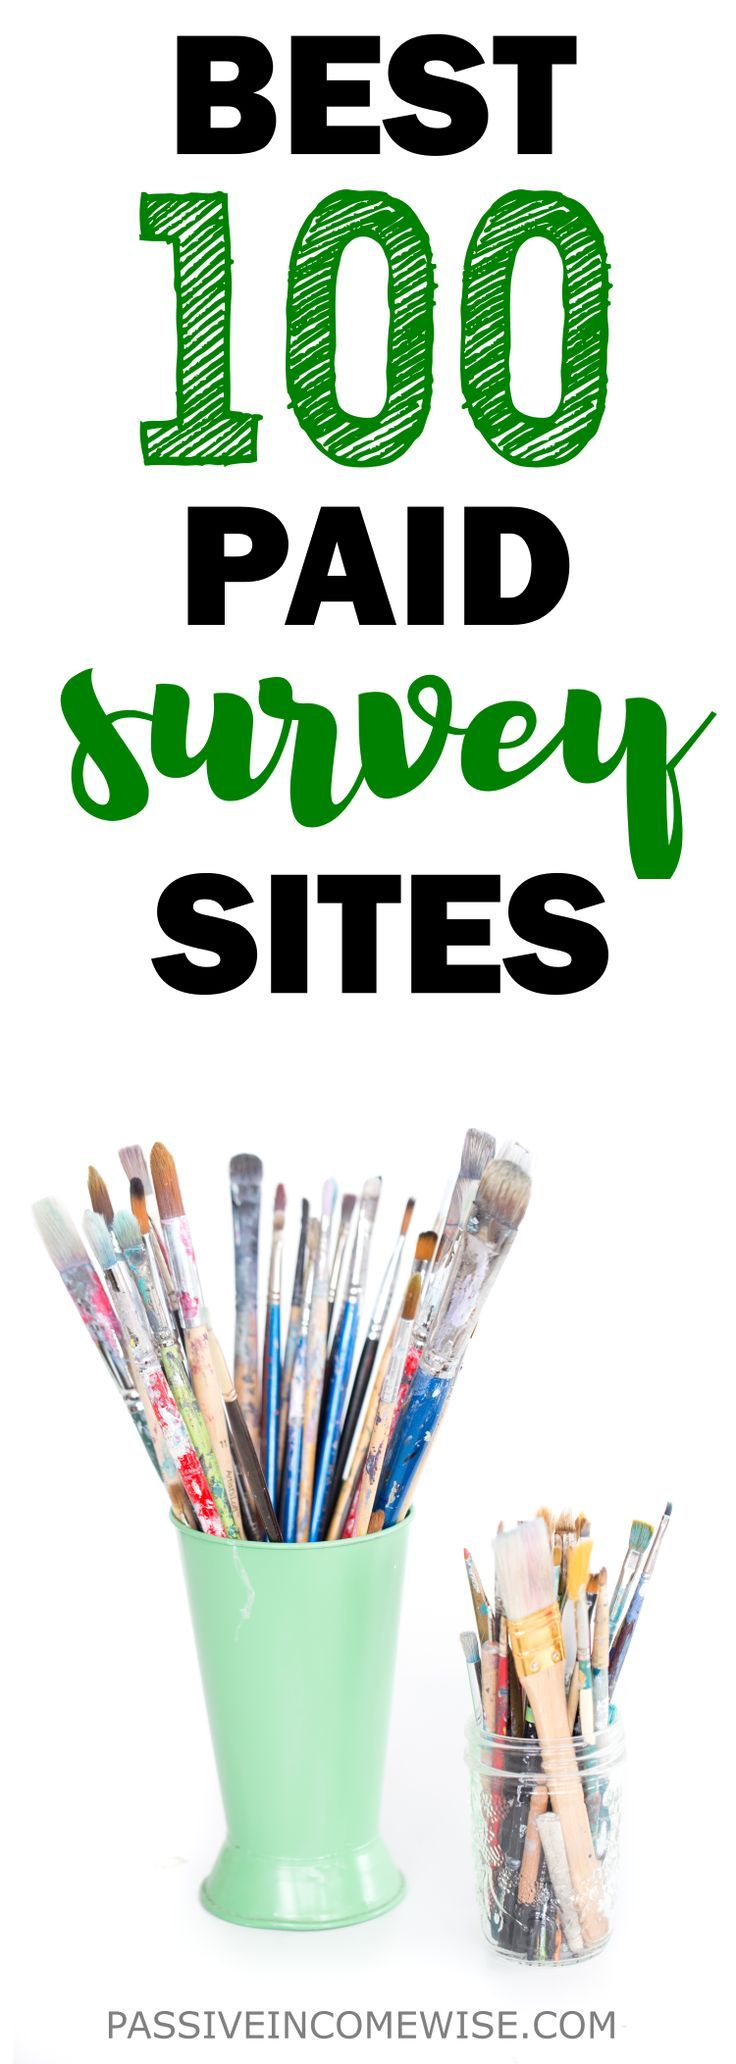 This list has the 100 best survey sites to make money as a side hustle. Best surveys sites, paid survey sites, online survey sites, make money online, surveys for money